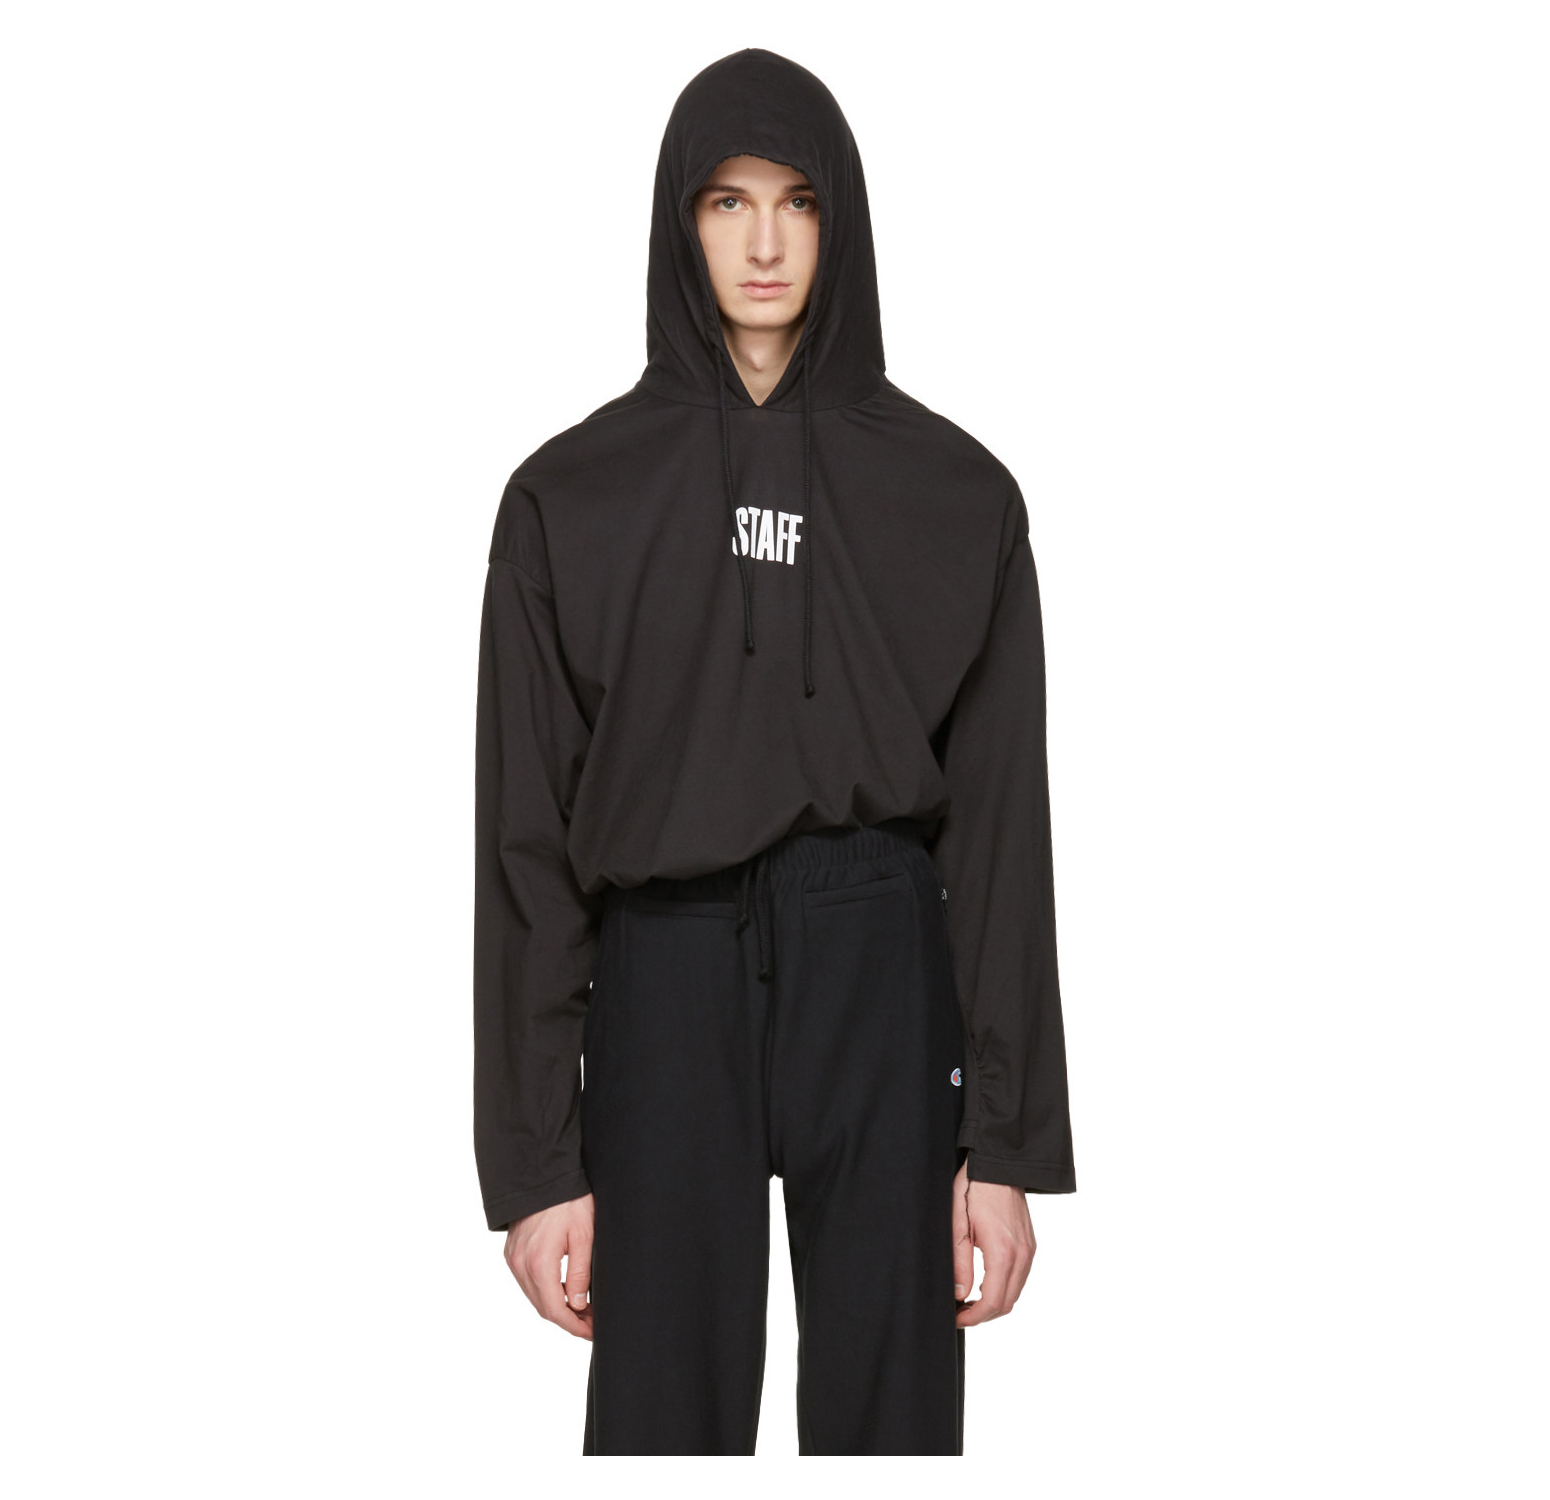 VETEMENTS Black Hanes Edition 'Staff ' Hoodie